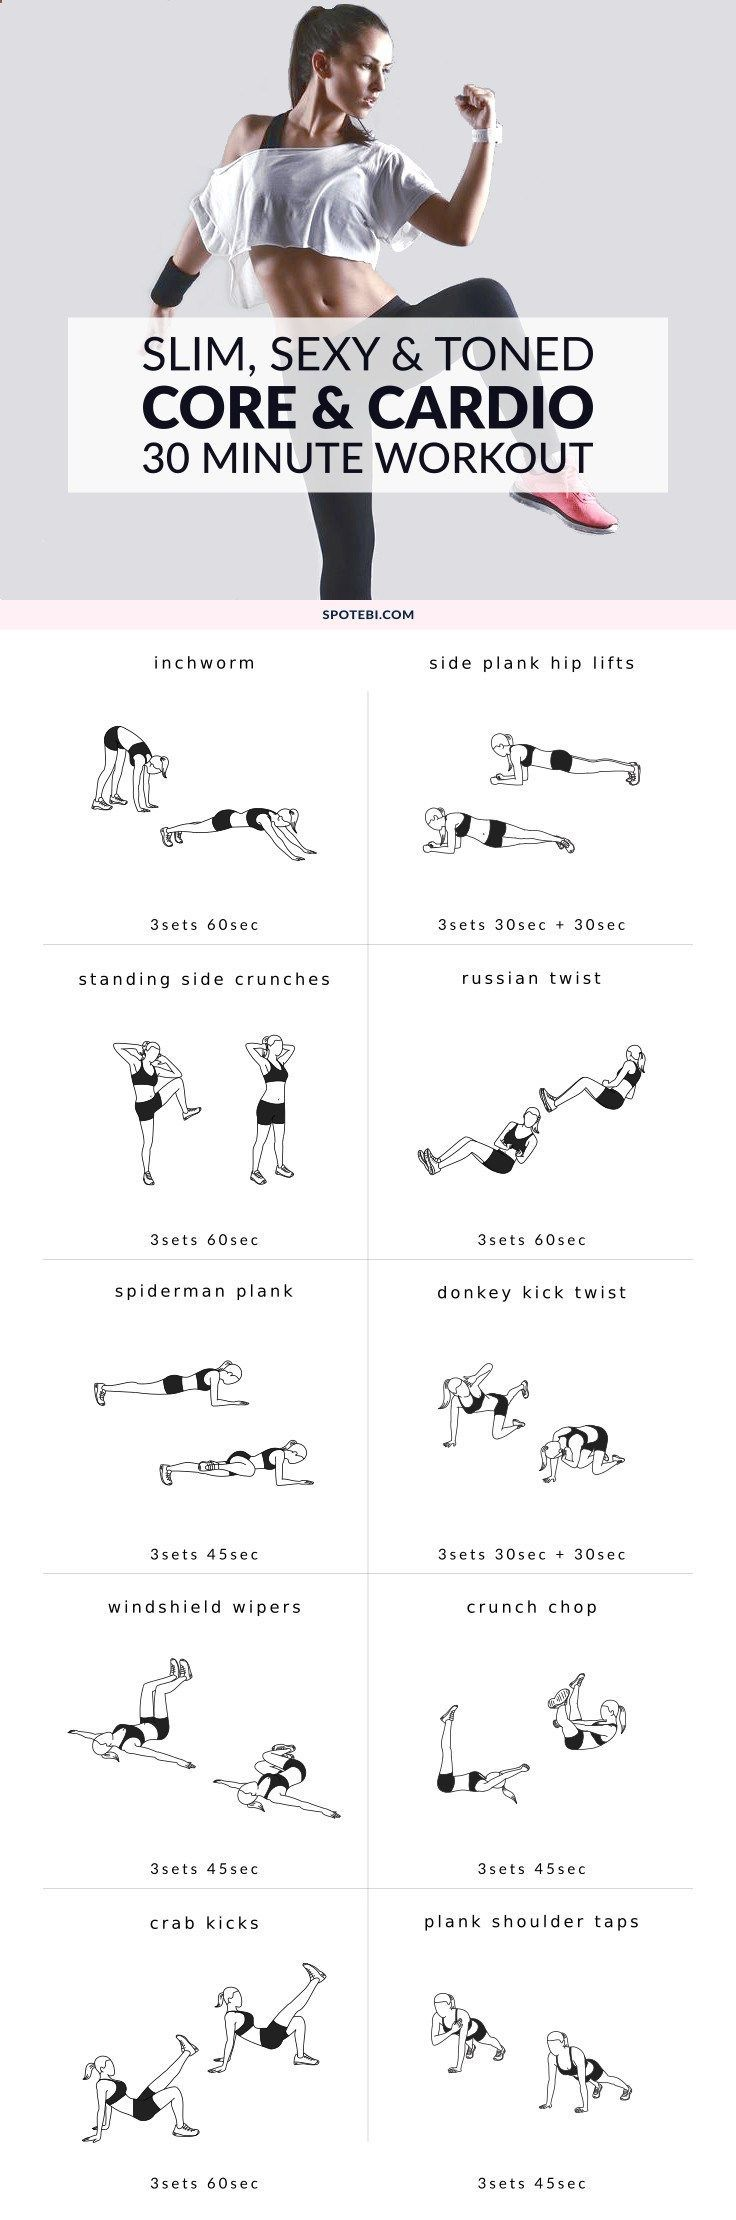 Work your abs, obliques and lower back with this core and cardio workout. Improve your aerobic fitness at home and get a toned, sculpted and slim belly! www.spotebi.com/... http://www.weightlossjumpstar.com/types-of-exercise-to-lose-weight/